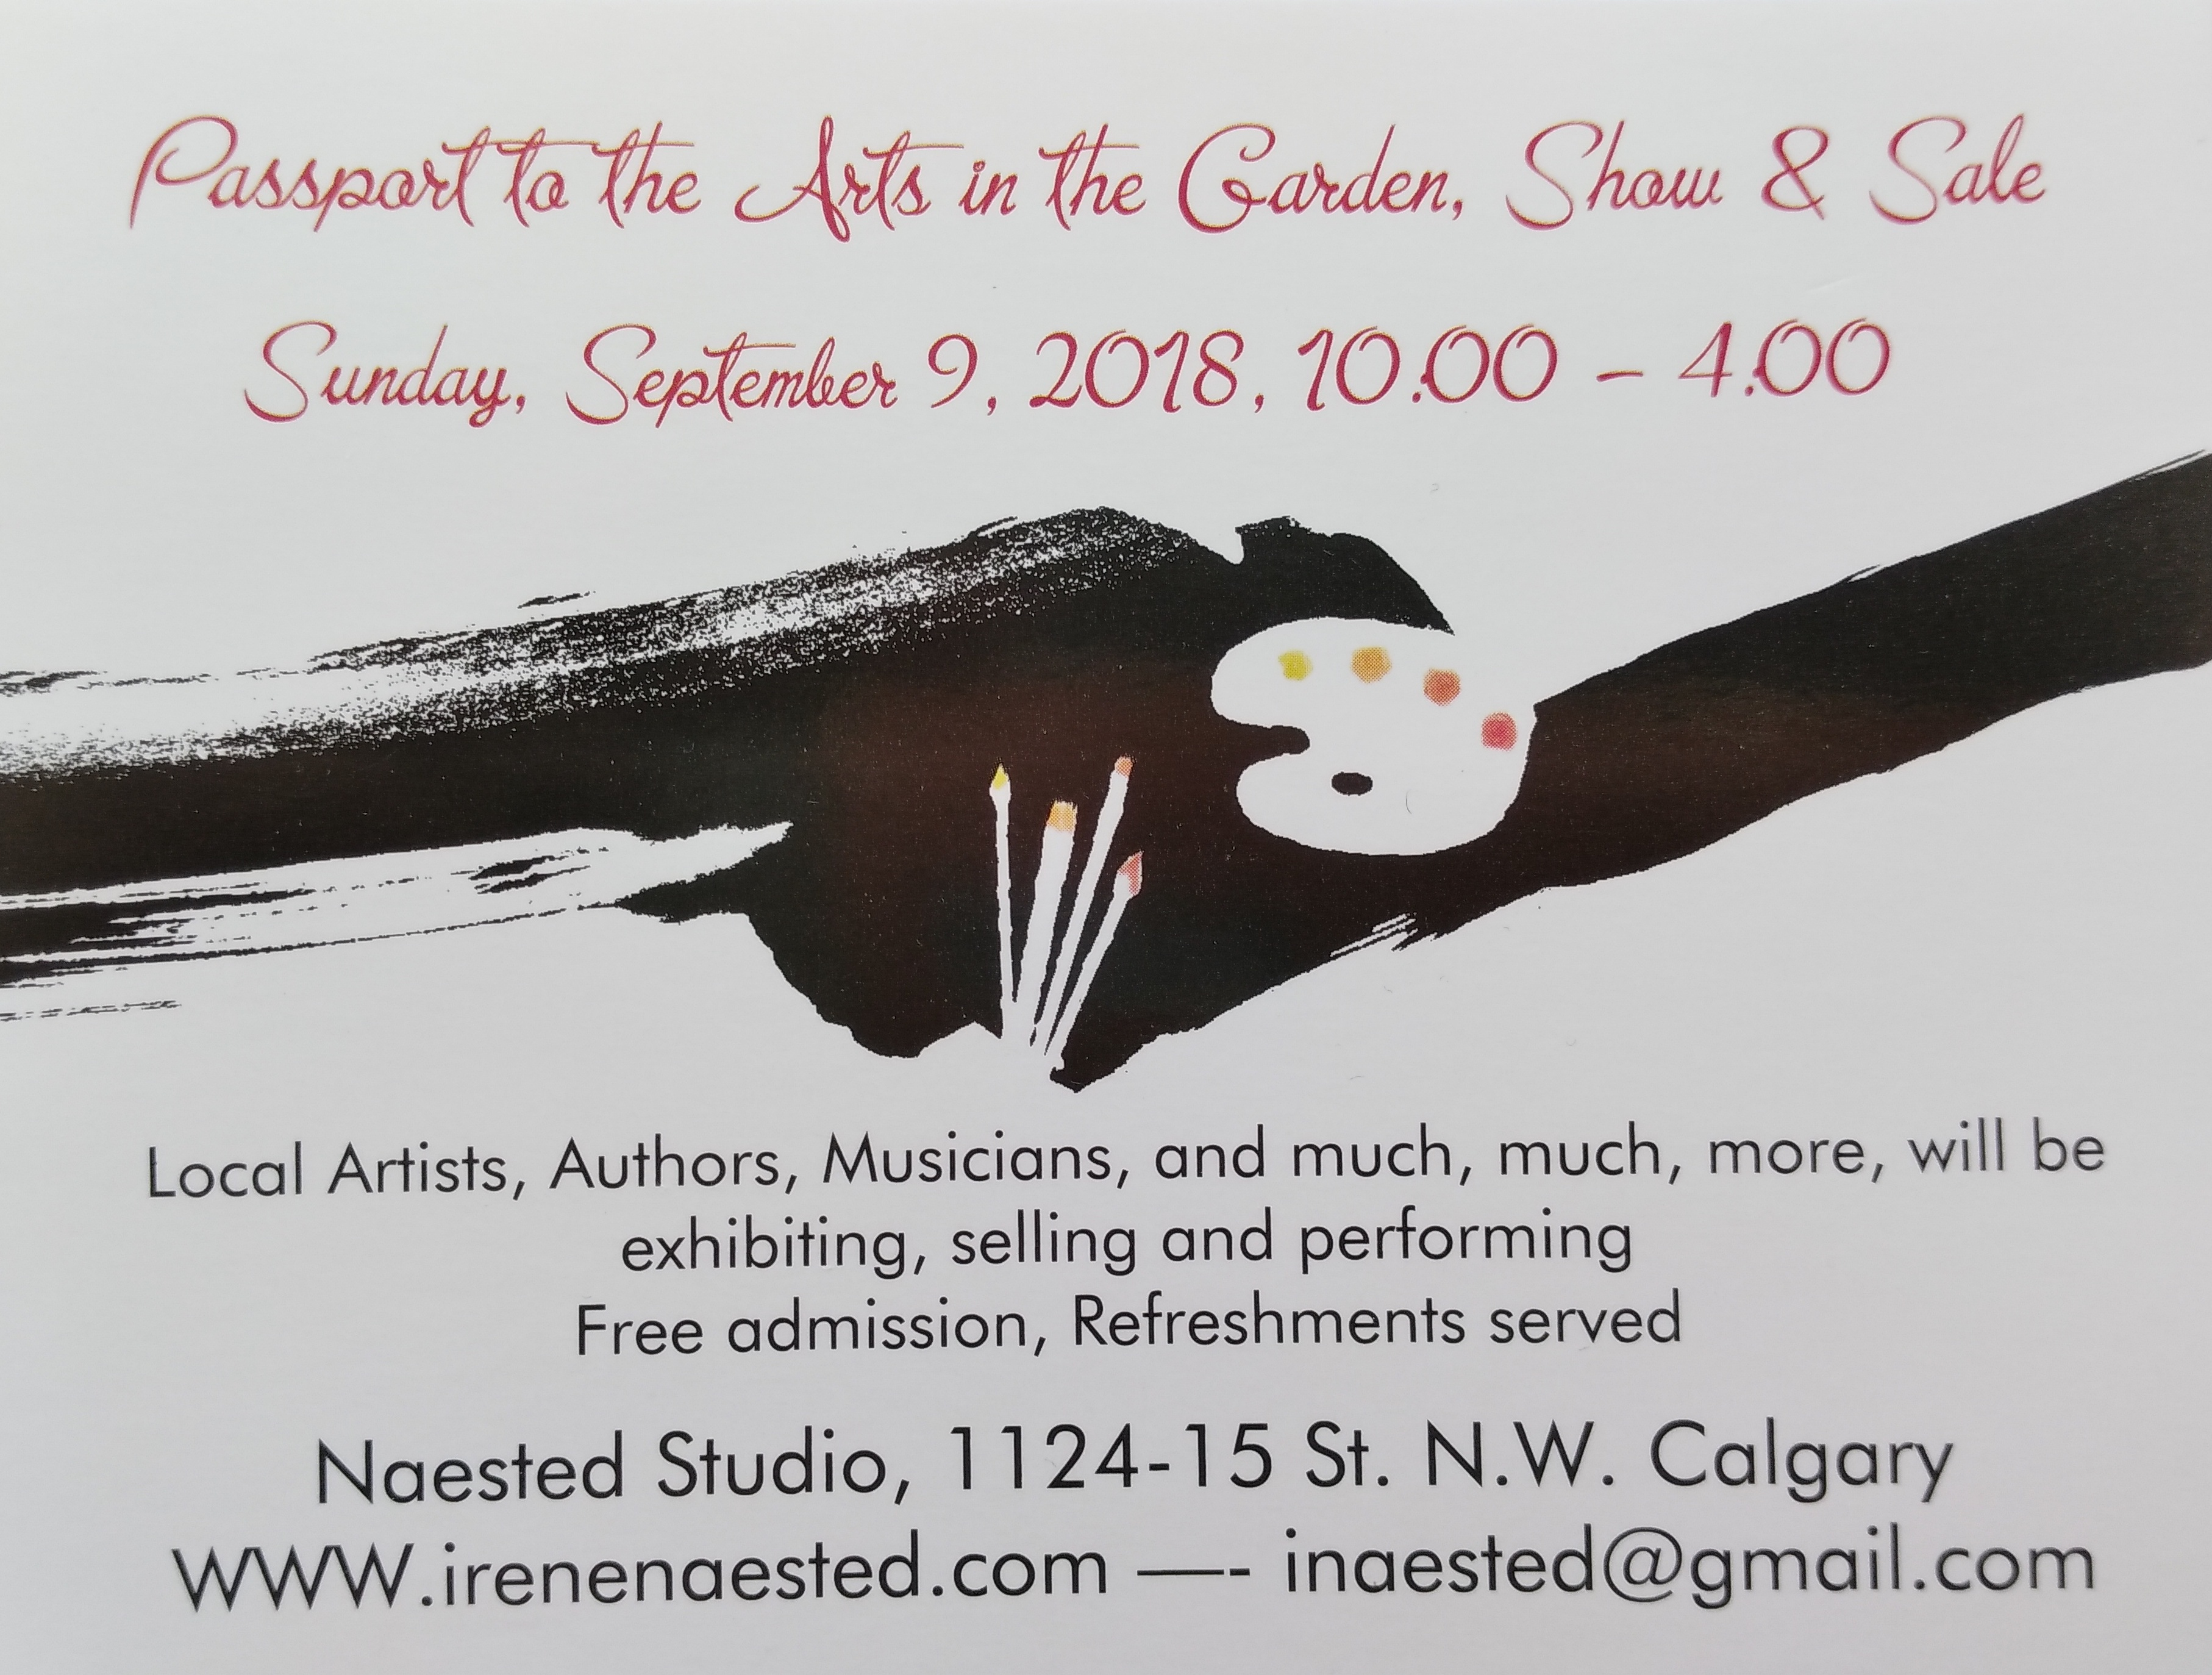 Passport to the Arts in the Garden Show & Sale, Sunday, Sept. 9, 2018